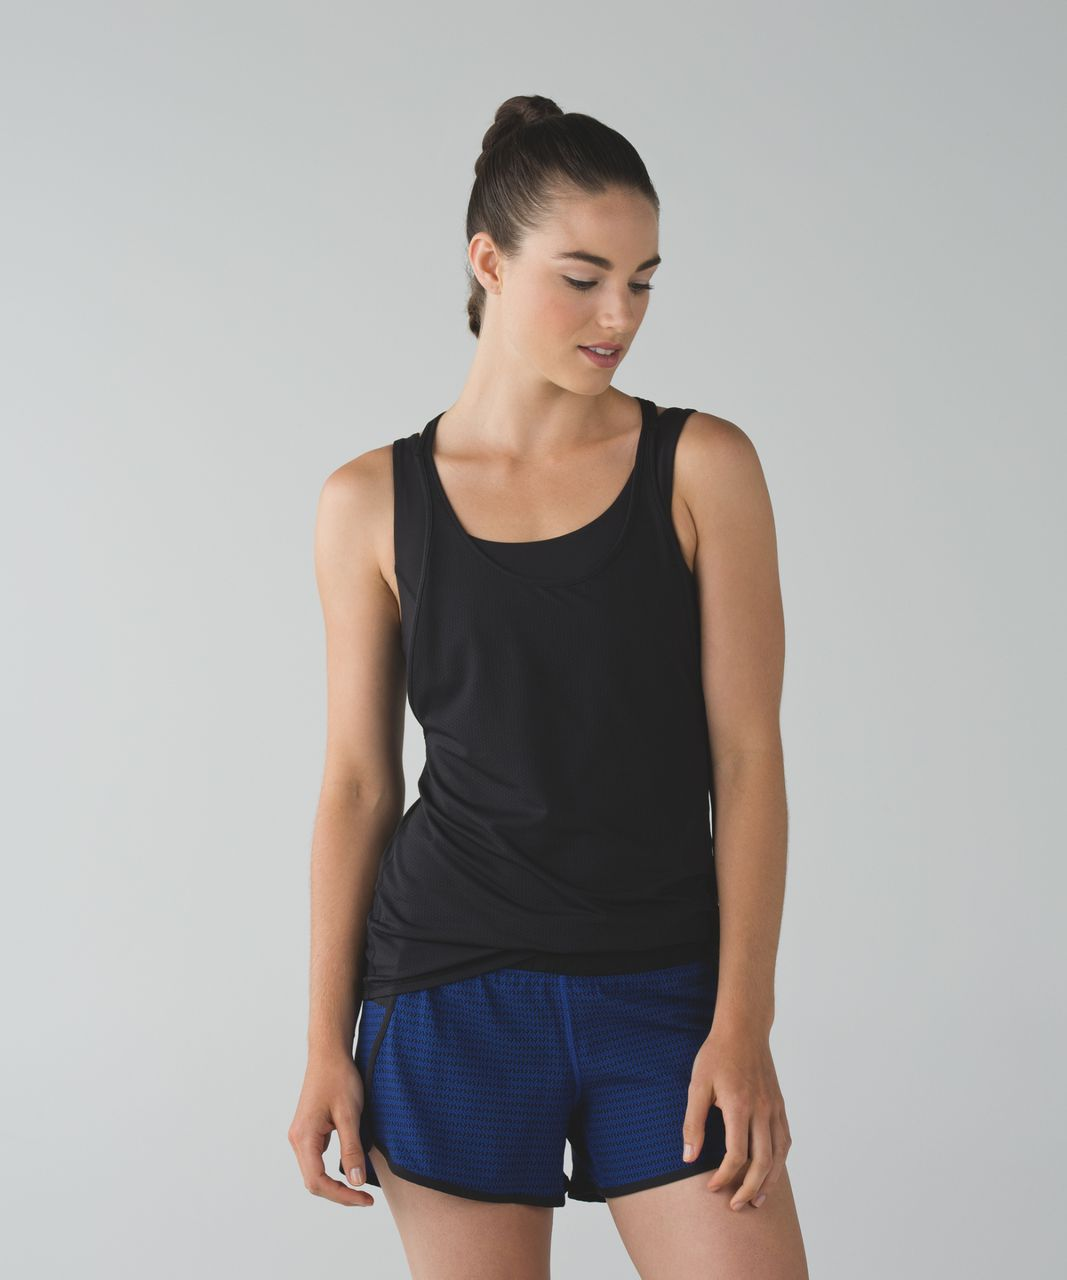 Lululemon Tracker Short III *4-way Stretch - Washi Weave Sapphire Blue Naval Blue / Black